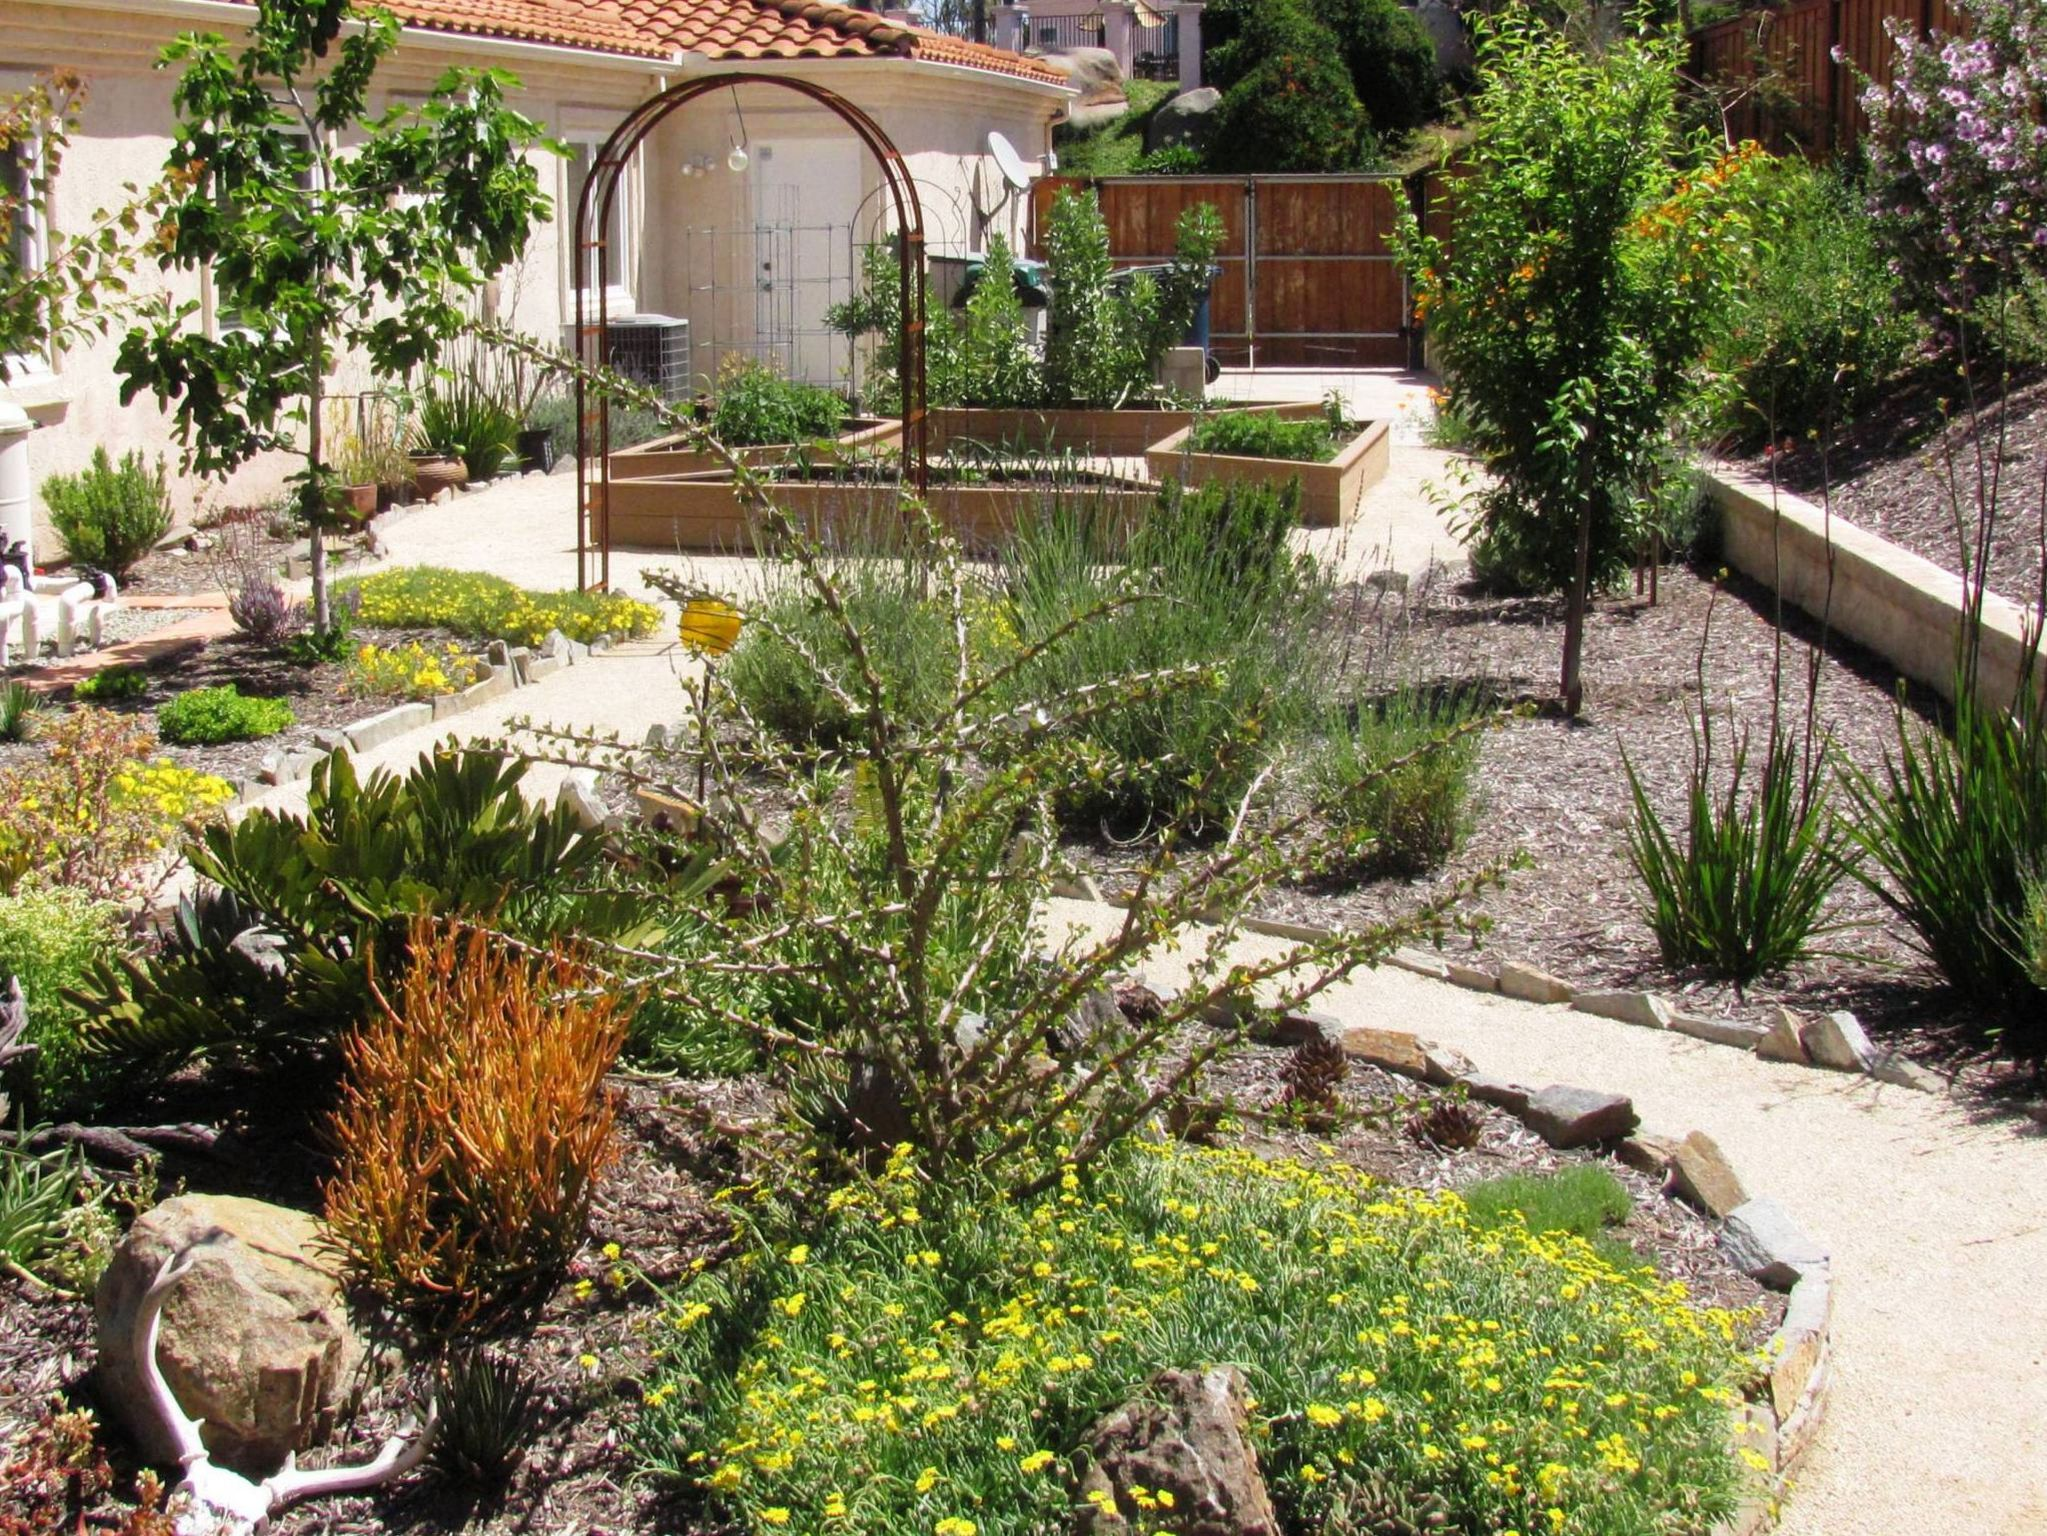 Large Backyard Landscape Design with Simple Concrete closed Pebble Space and Small Flowers